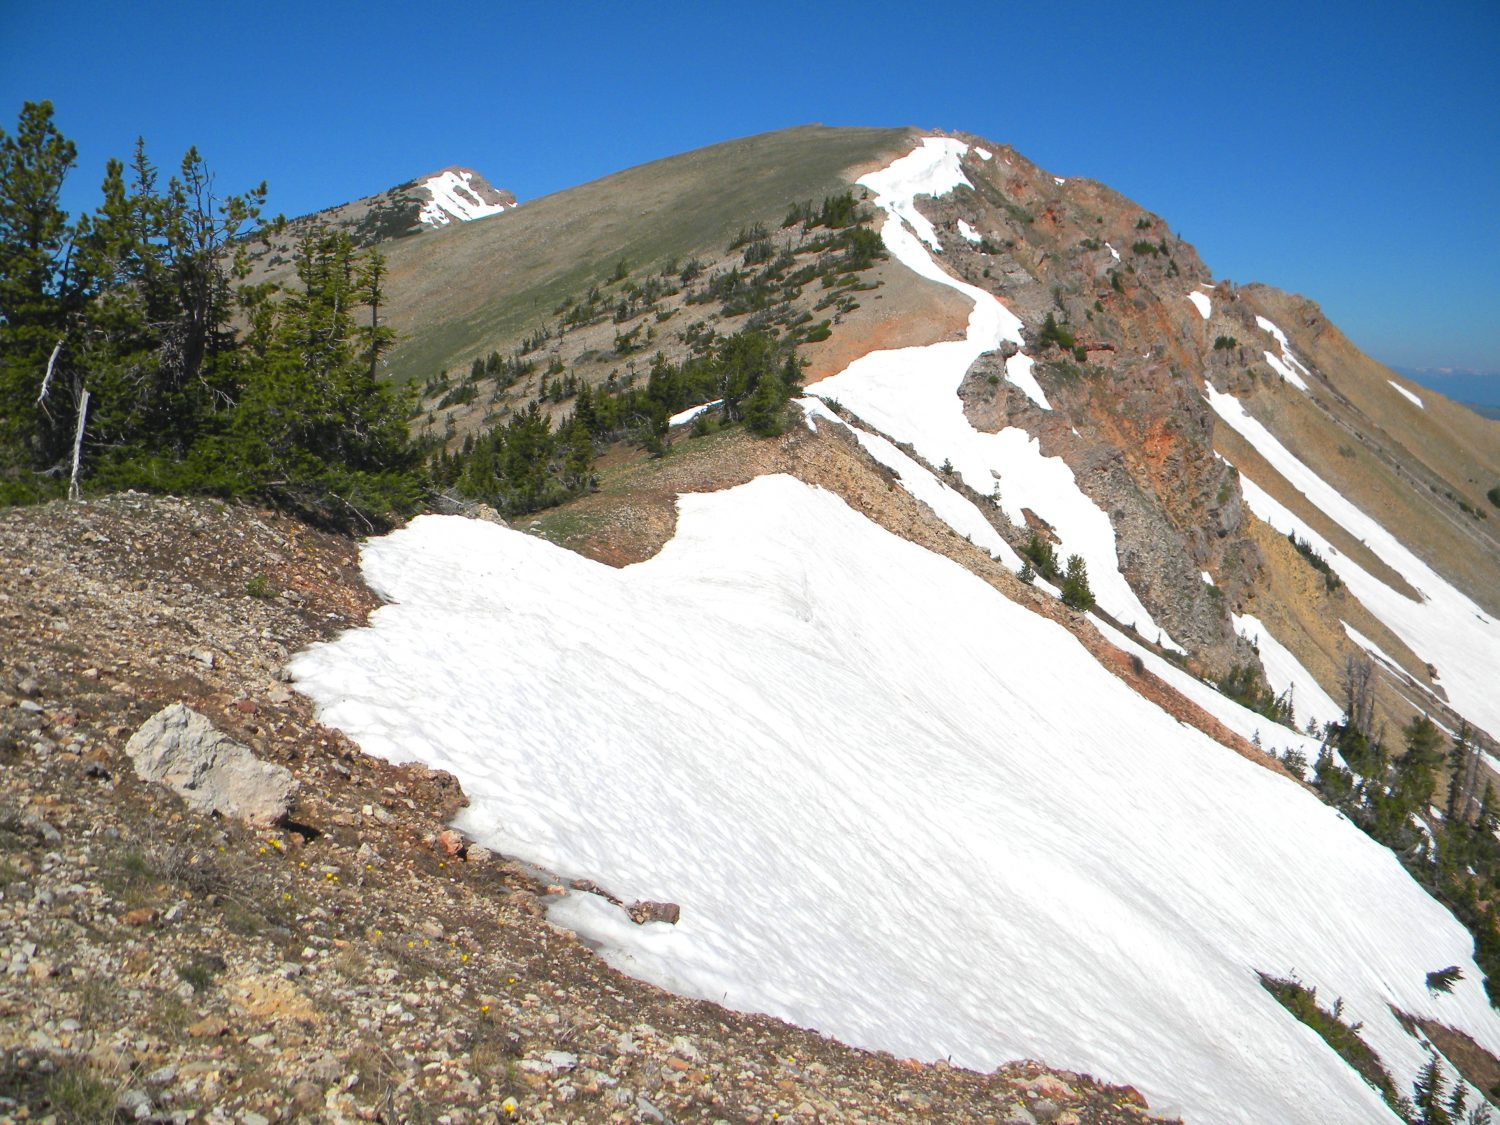 This photo was taken near where the trail left the ridge for the basin to the north. Crosscounty hiking from here is relatively easy. The high point visible at left center. The larger lump dominating the photo is unnamed ridge point, 9,800'. June 2009